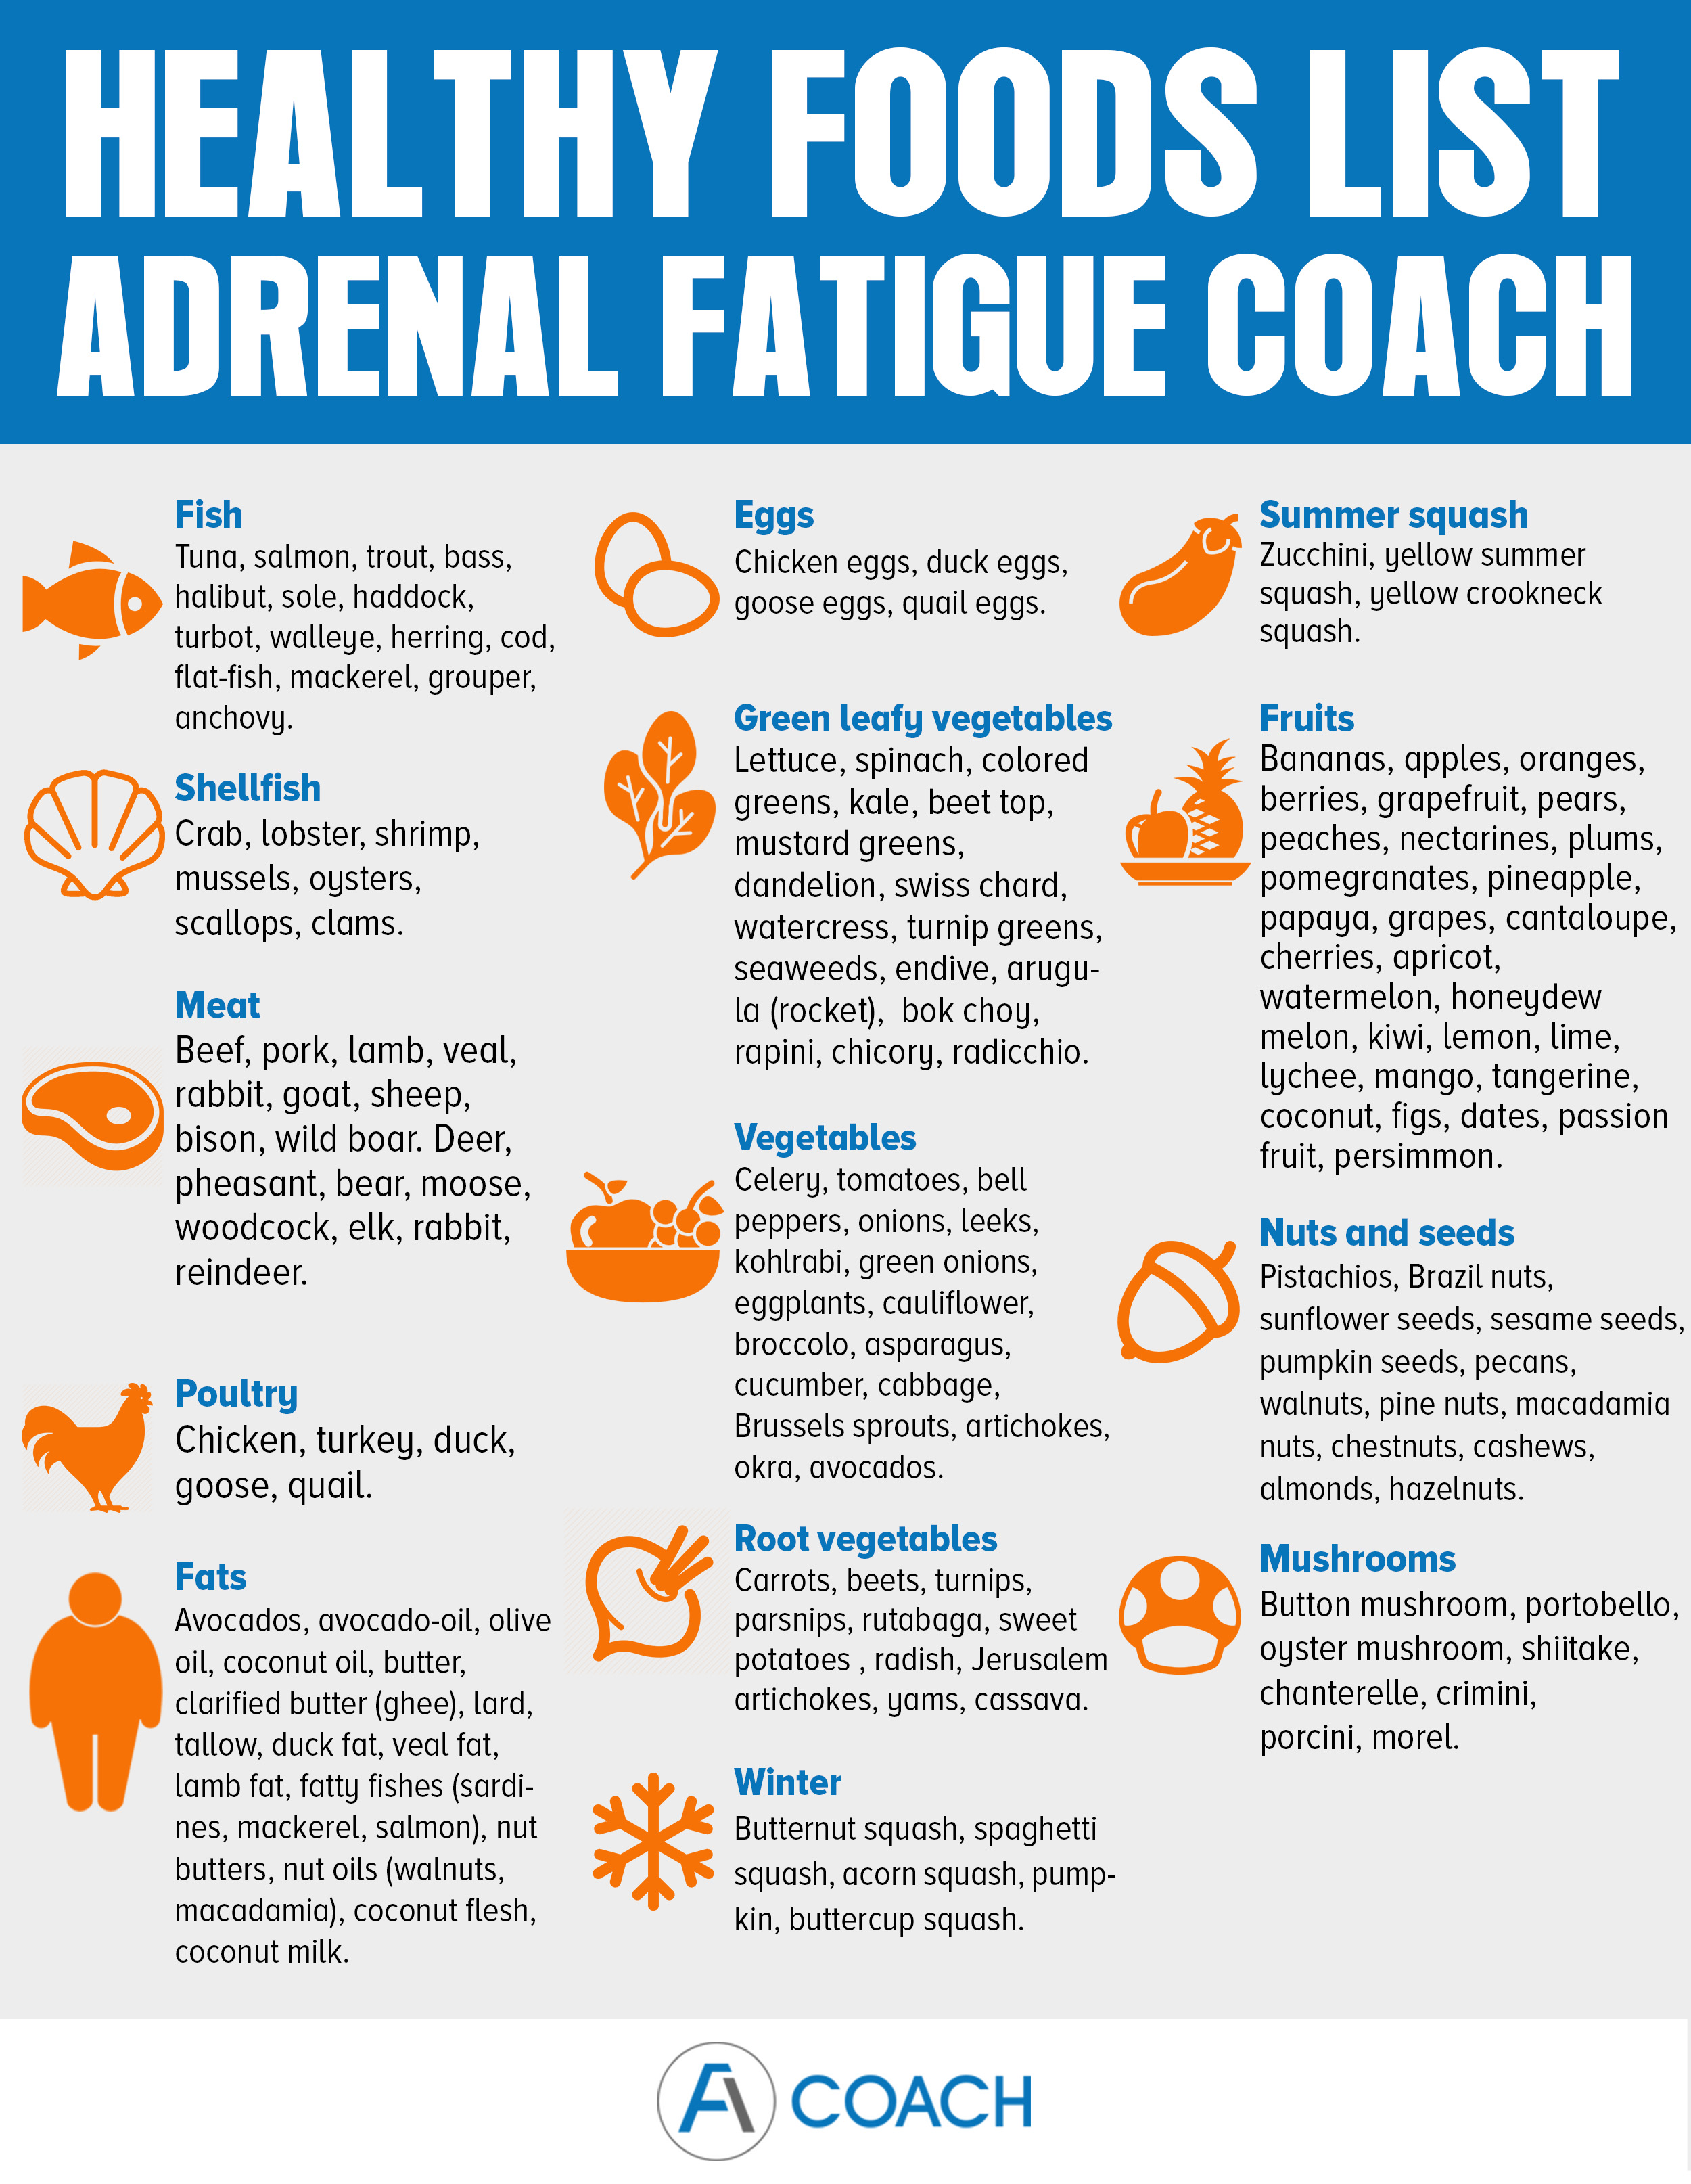 Best Foods For Adrenal Fatigue